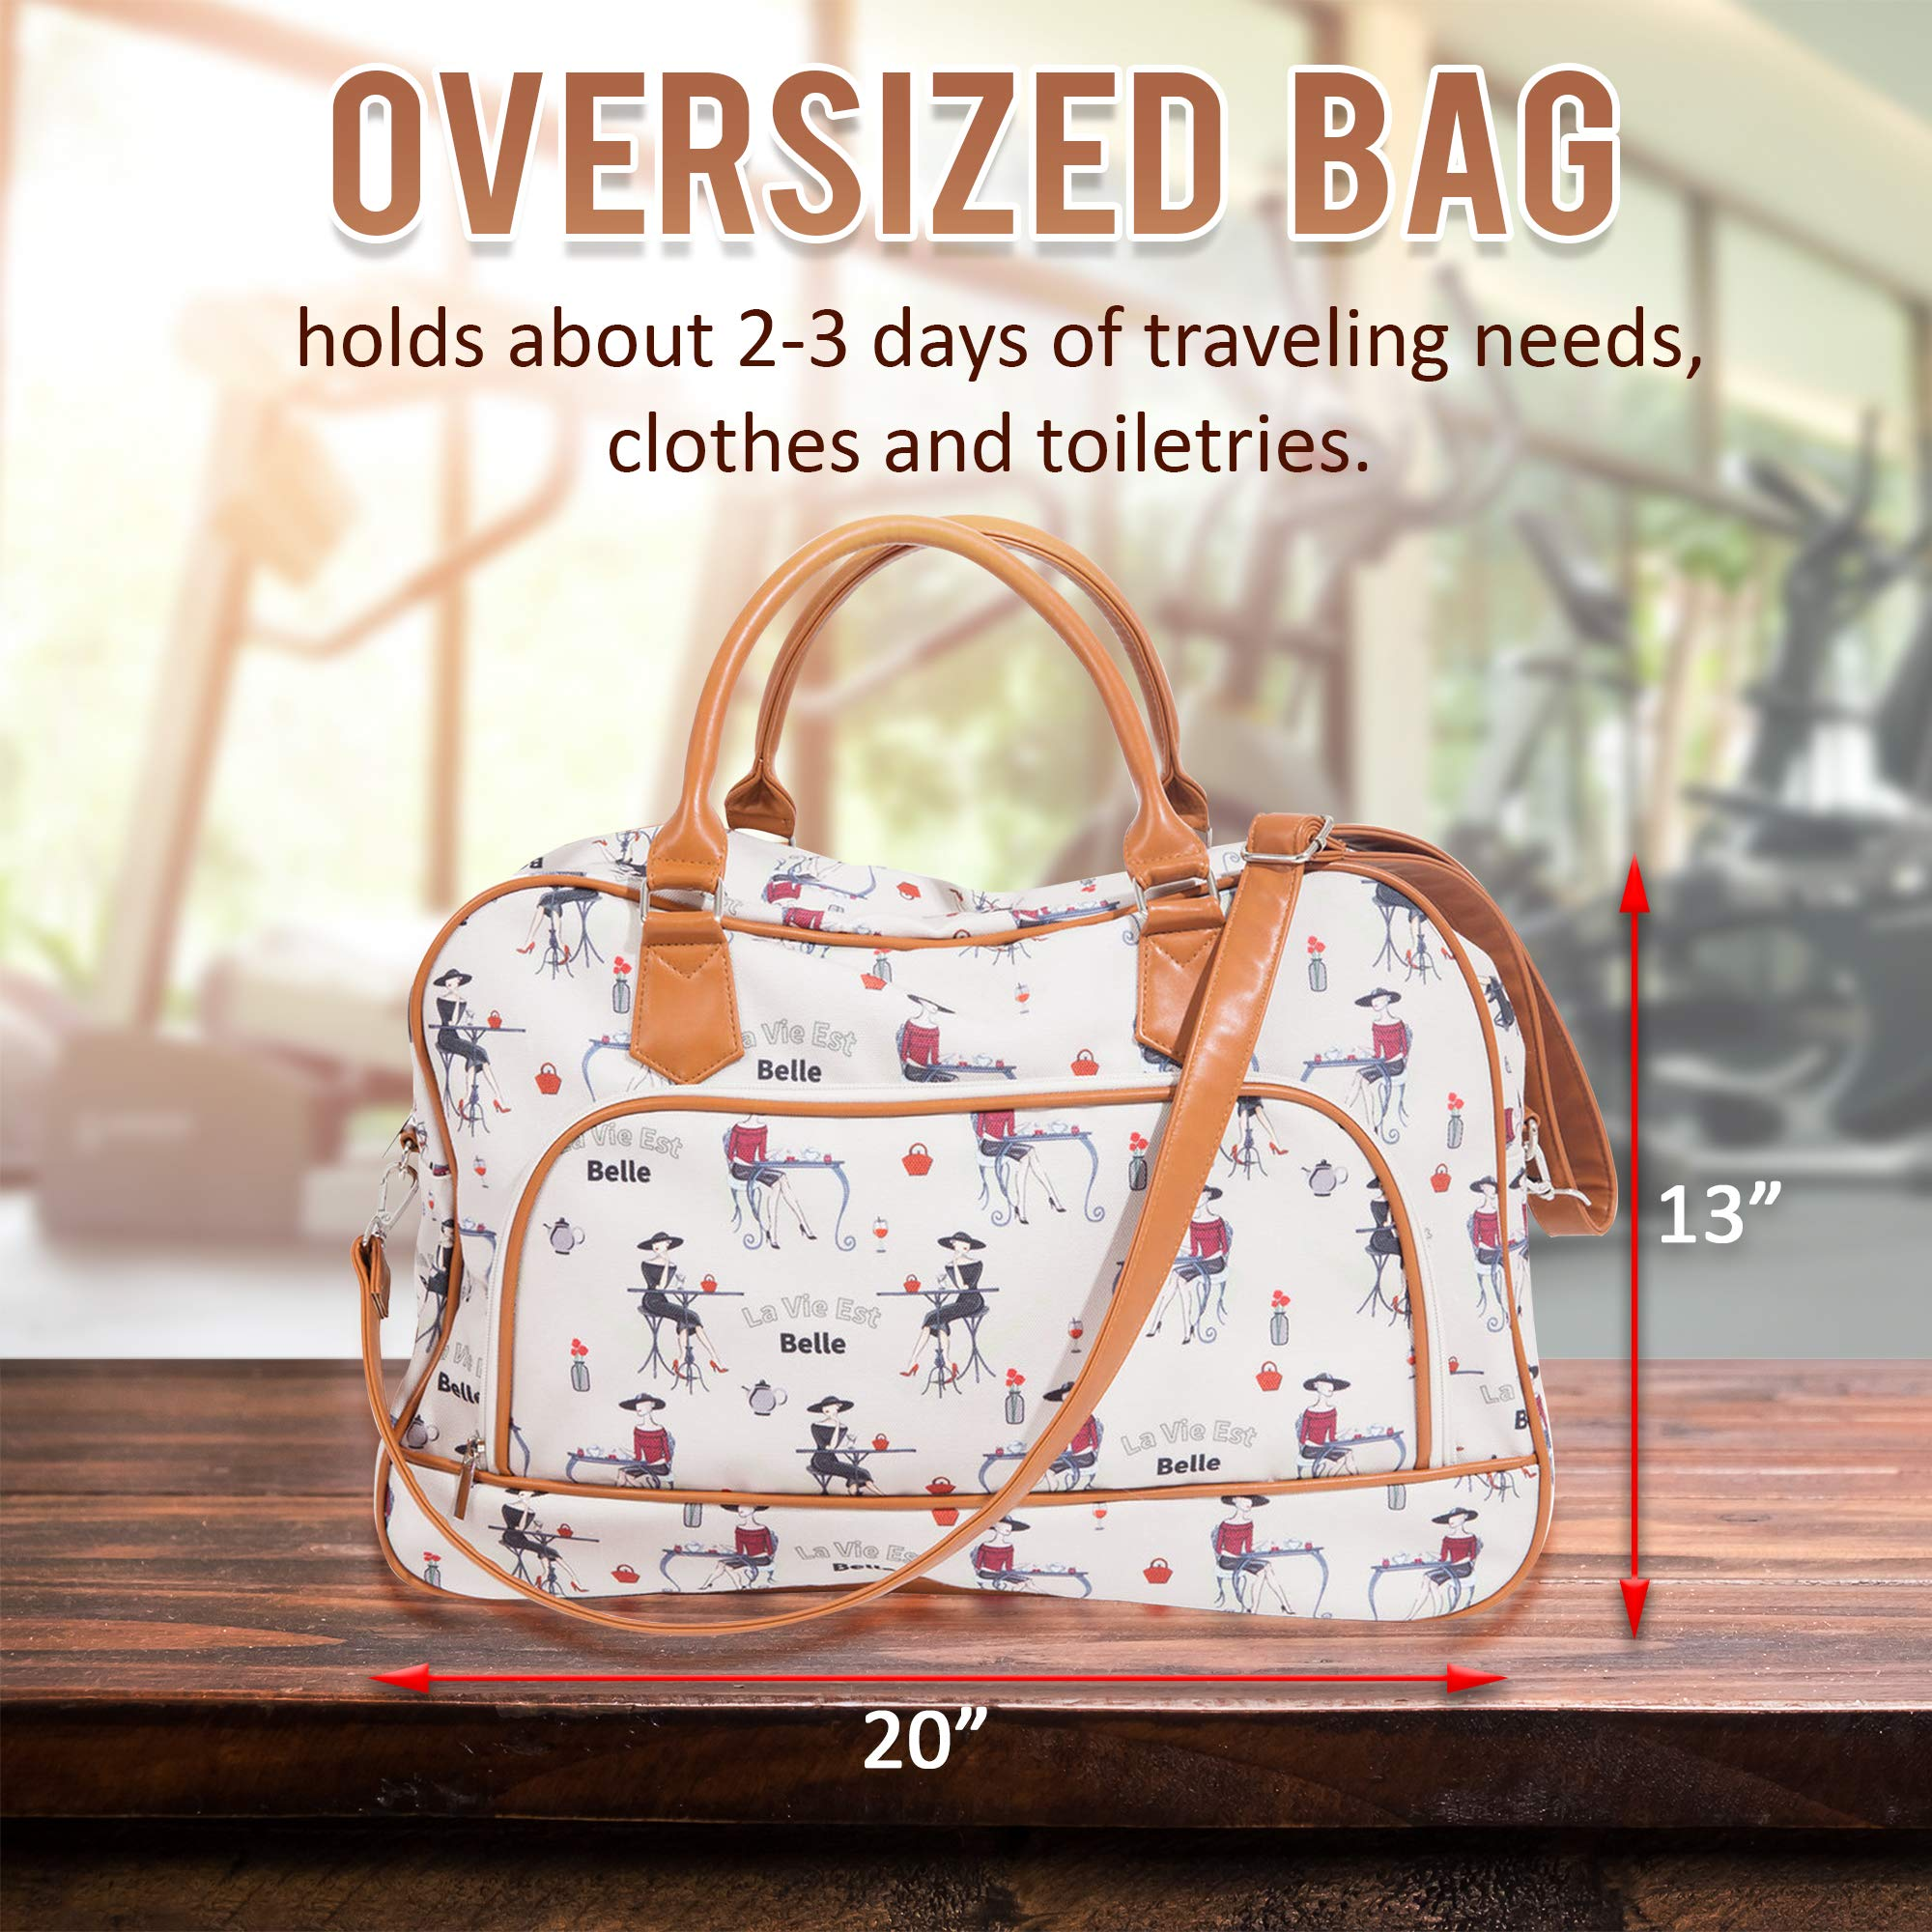 Canvas Weekender Bags For Women: Travel Duffle Tote Bag. Elegant Weekend/Overnight Travel Bag Or Totes - Extra Large 20'' by 13'' by Summerease (Image #2)